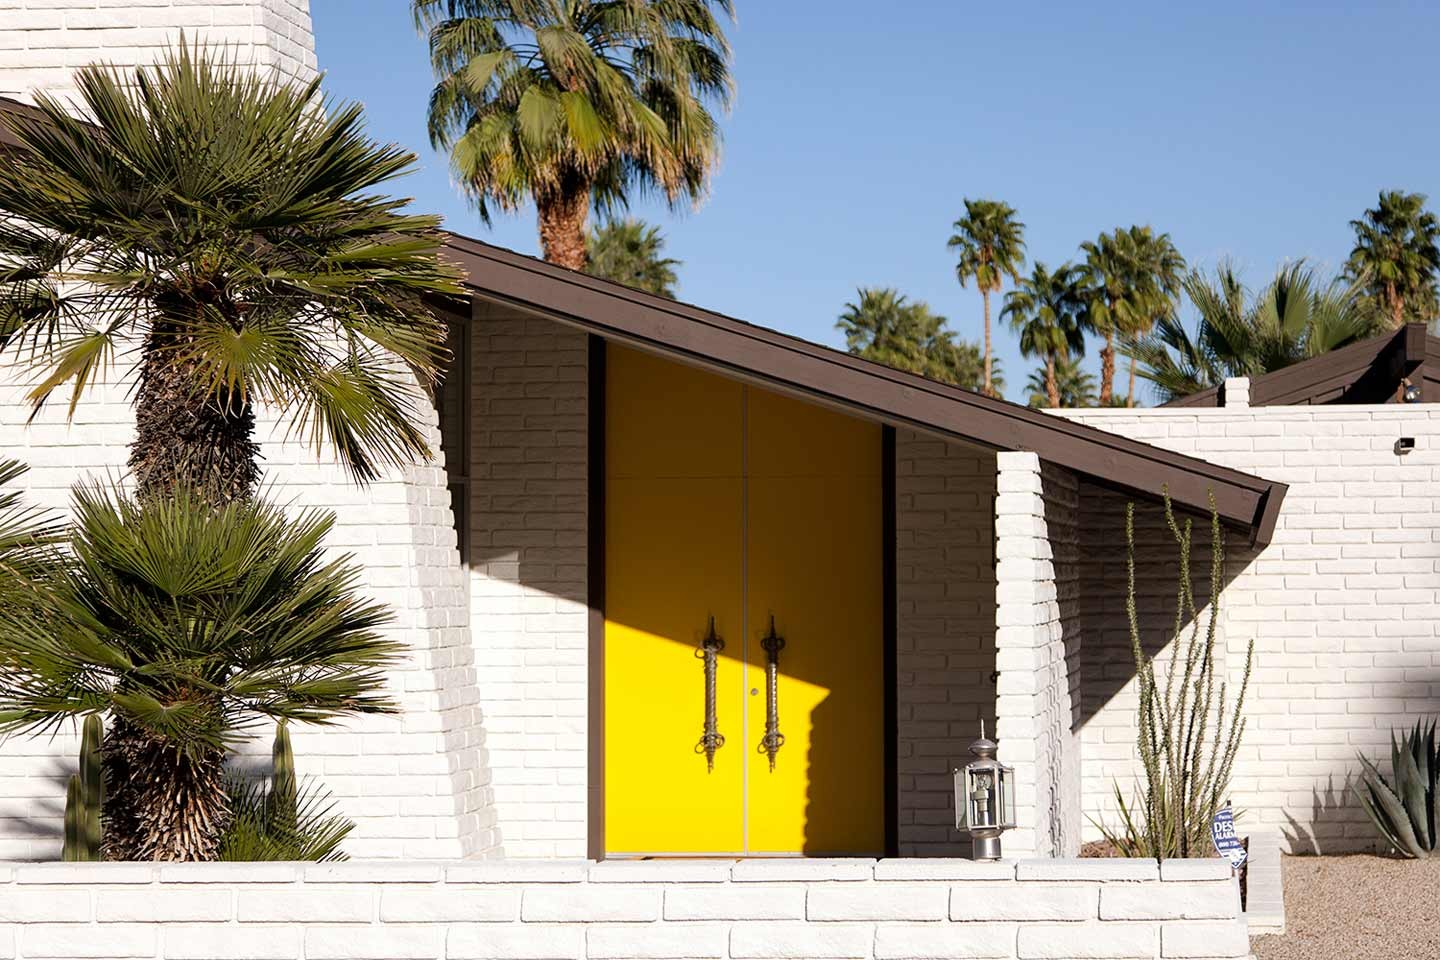 Palm Springs, a cultural escape in the California desert on Falcondale Life blog. Palm Springs desert resort city sits in beautiful Californian desert mountains and is renowned for mid-century modern architecture and luxury family travel. Photo credit Caroline Culler wikimedia commons